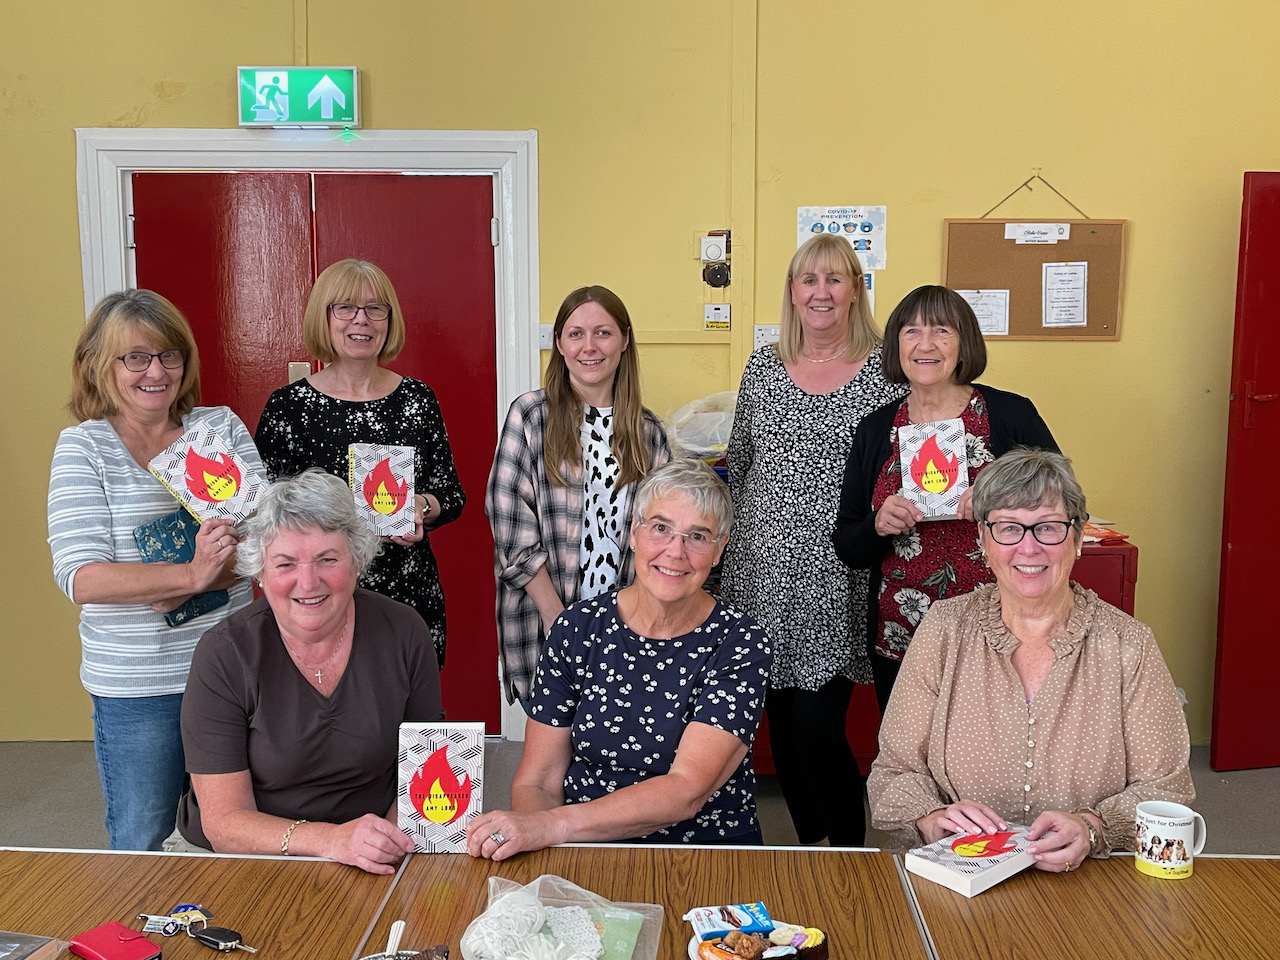 Books & Bakes Book Club members pose with their signed copies of The Disappeared and author Amy Lord at the end of the talk.